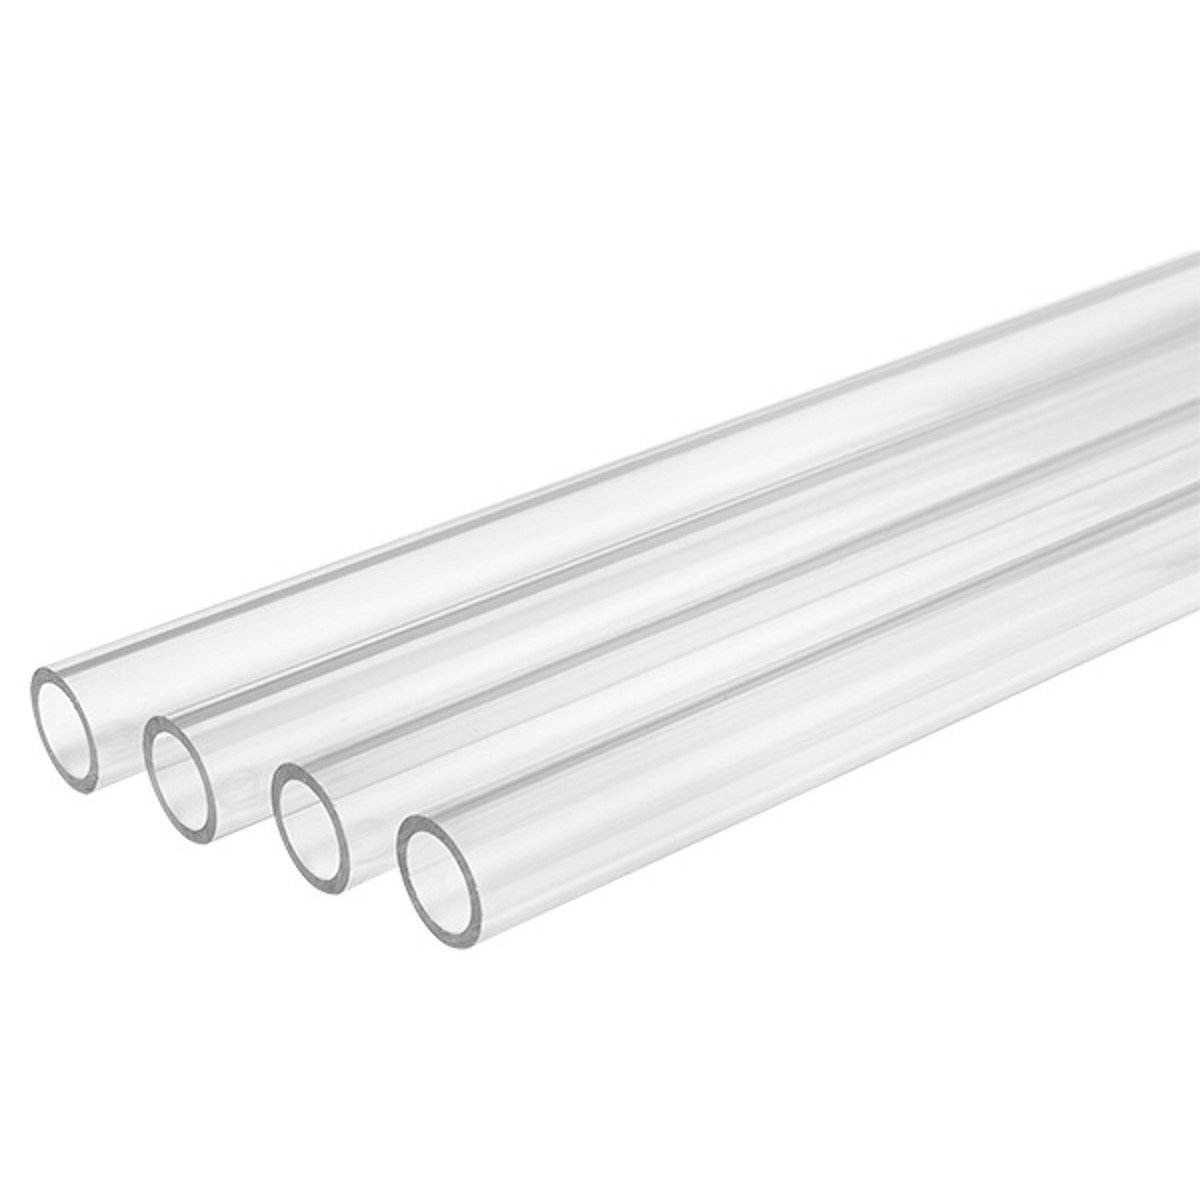 8mm ID 500mm Length Normal Temperature Barrow PETG Tubing Clear 4-Pack 12mm OD